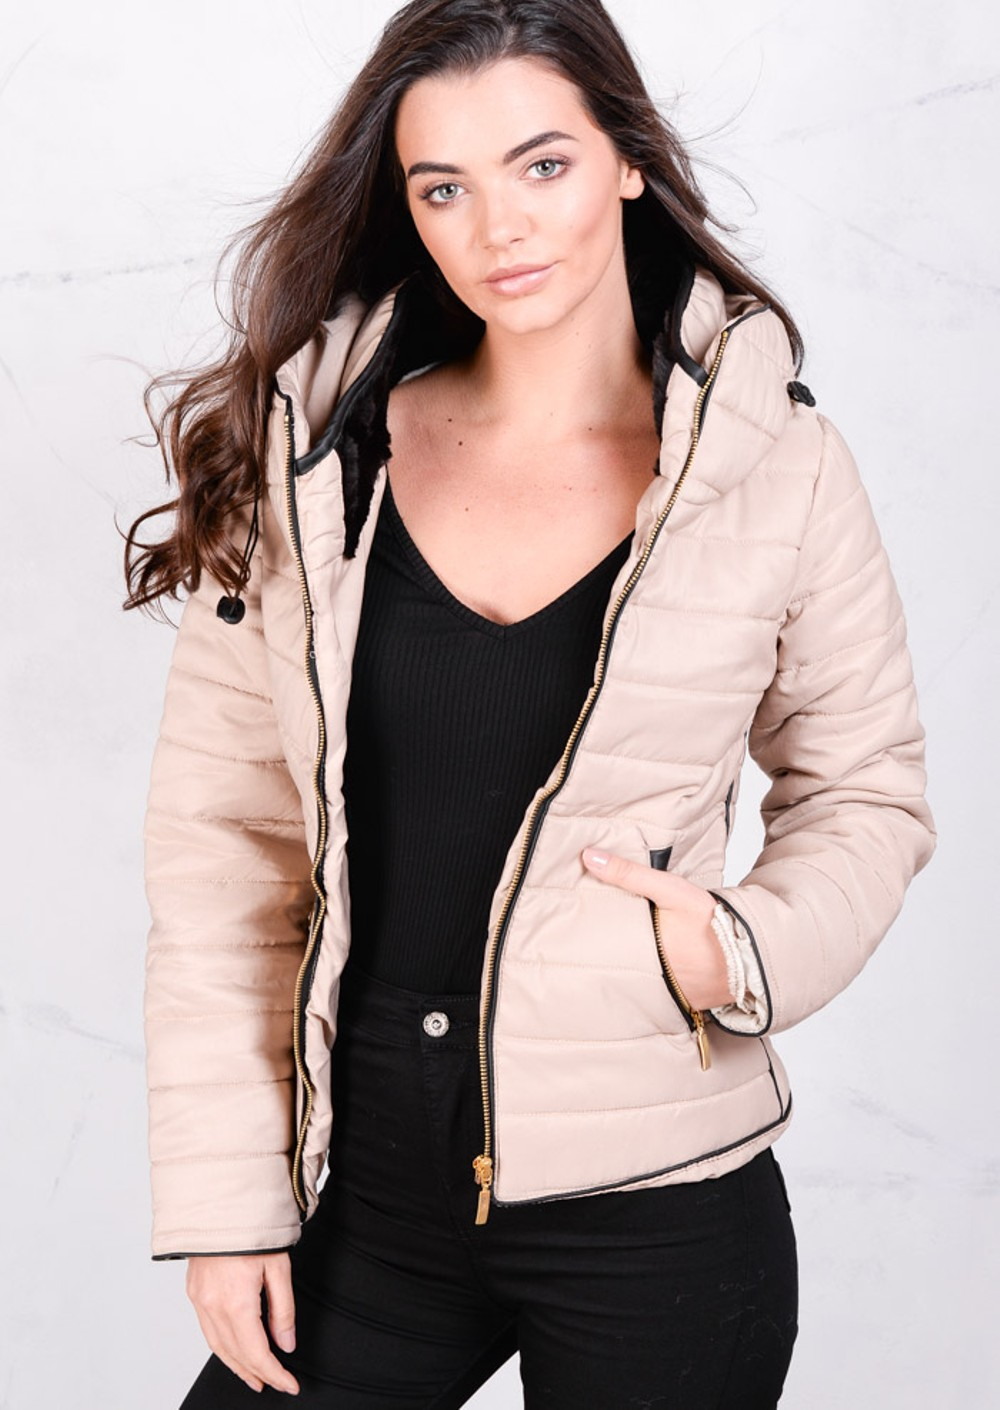 Lightweight Quilted Puffer Padded Jacket Coat Stone Beige : lightweight quilted coat - Adamdwight.com